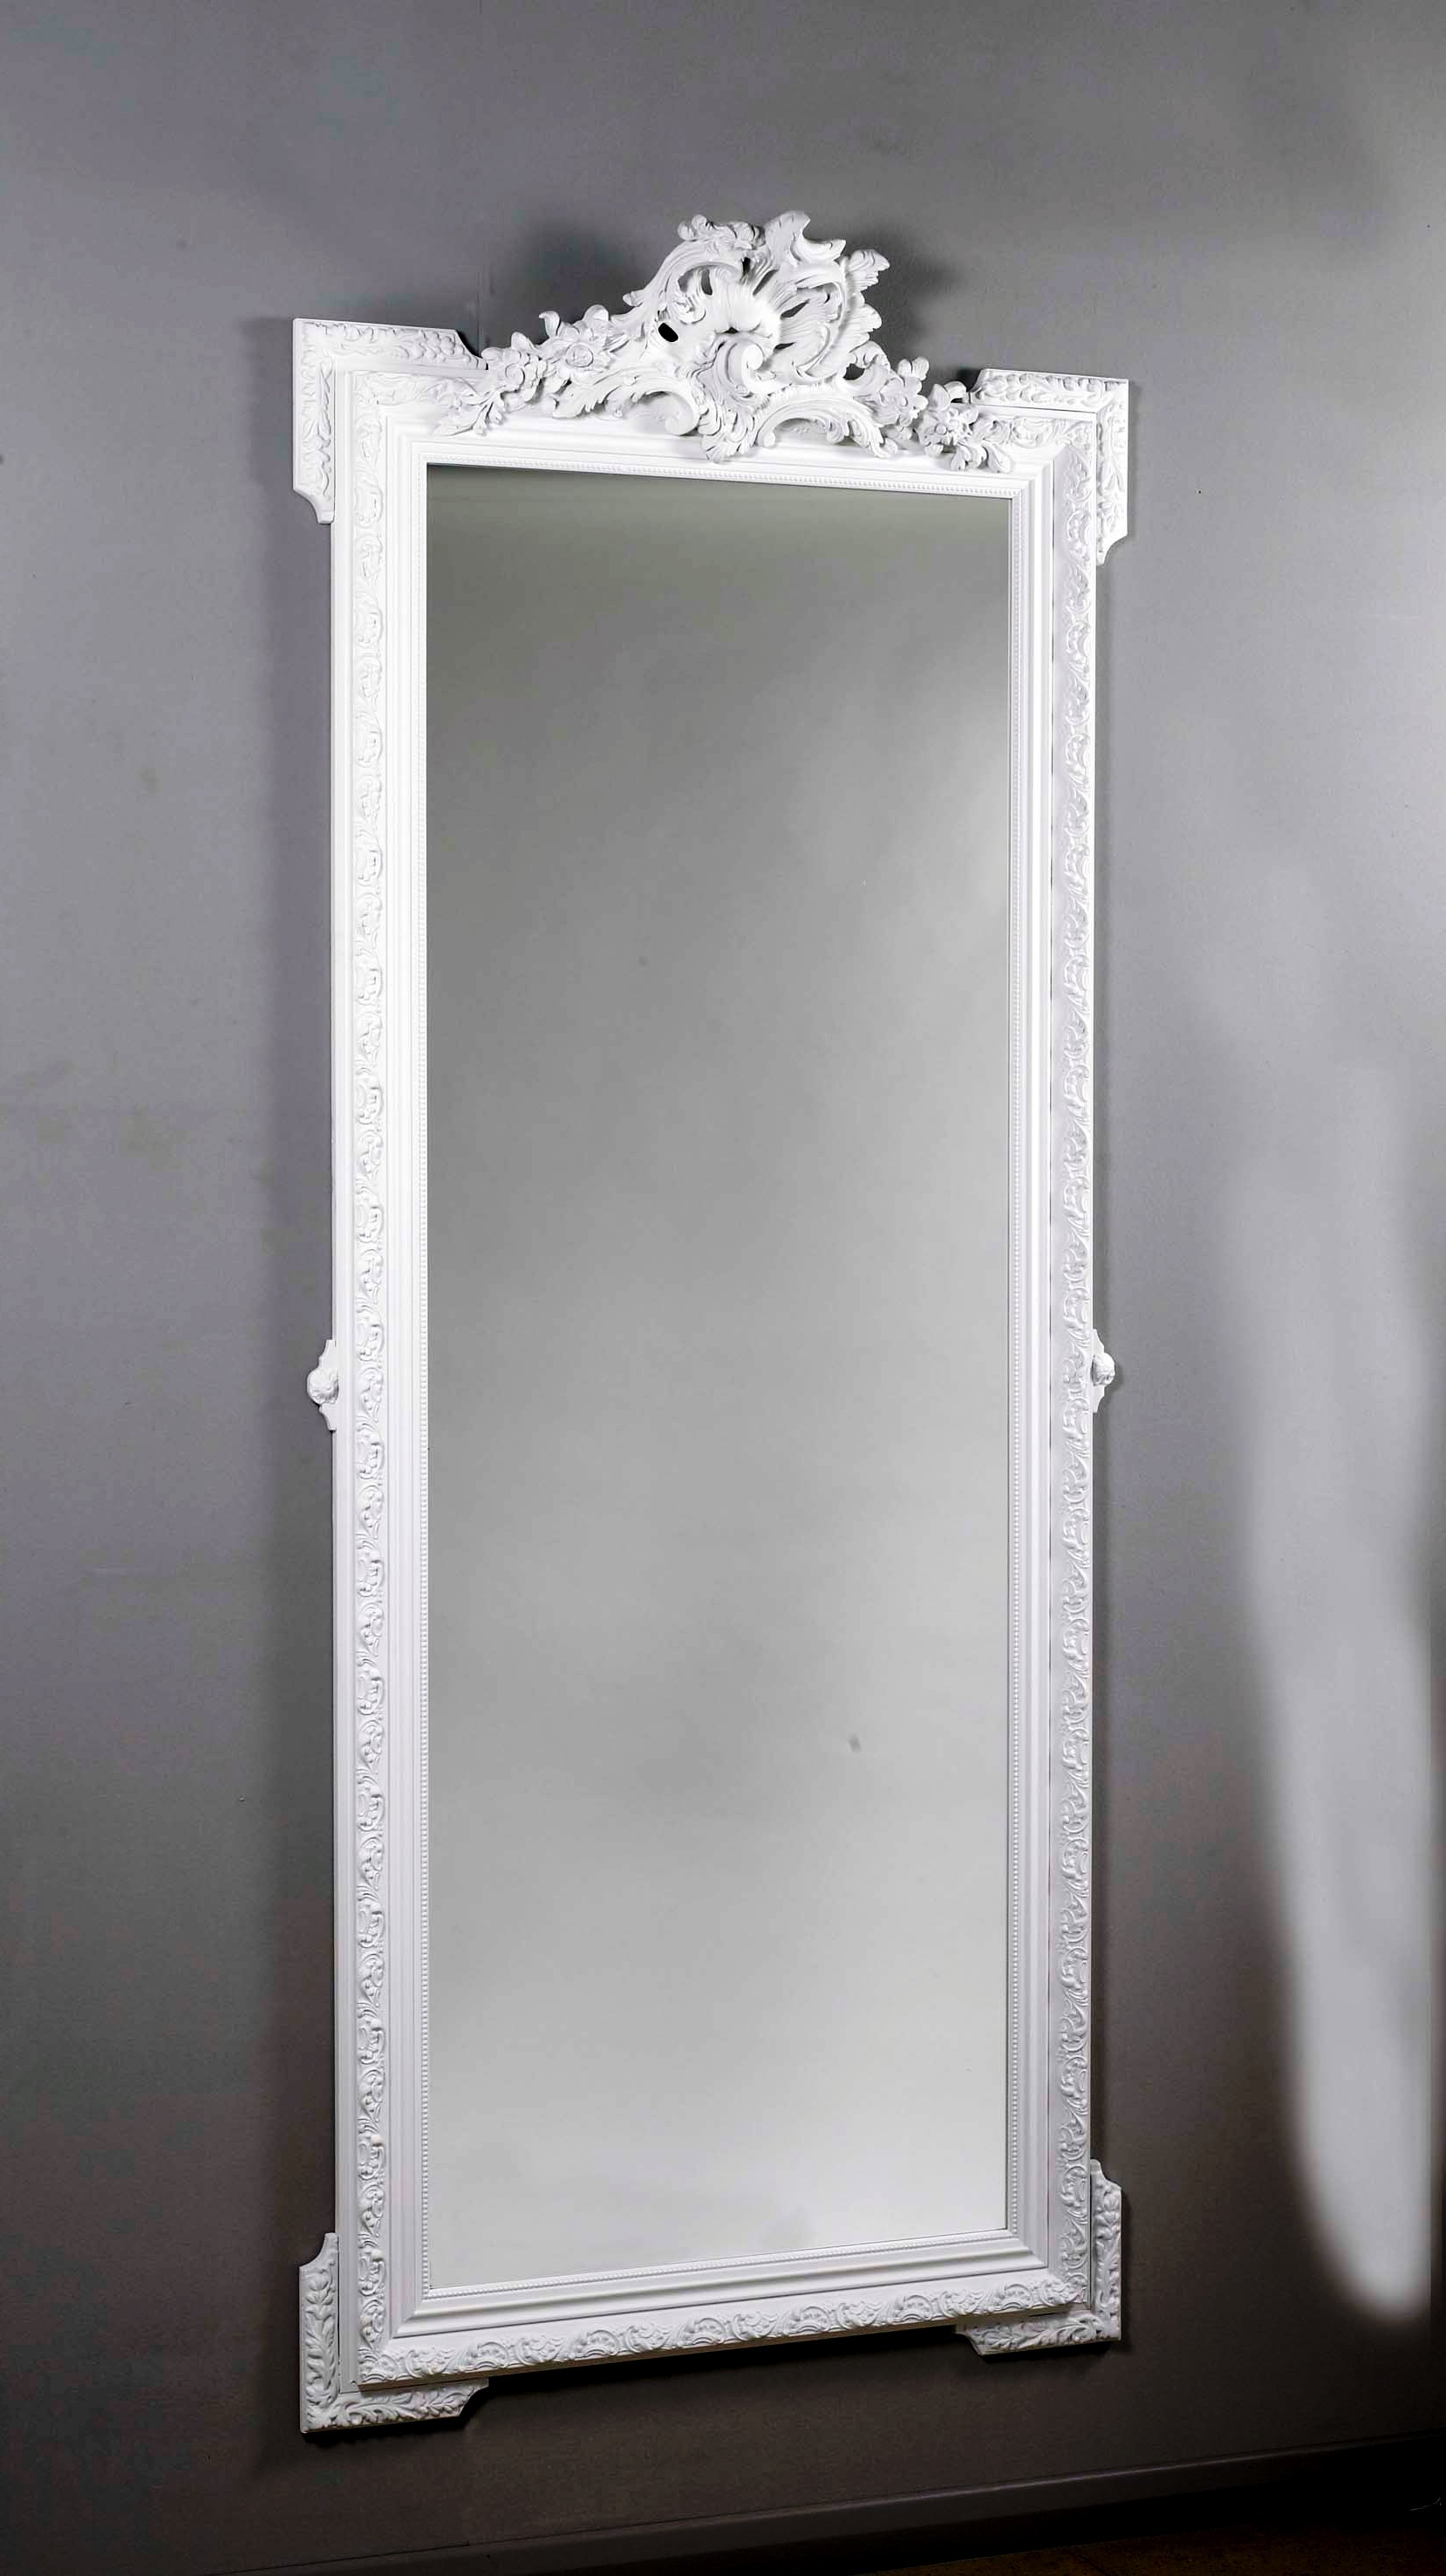 Romantica Grande White Wall Mirror Canciones Romanticas En Espanol Intended For Most Recent Decorative Full Length Wall Mirrors (View 7 of 20)